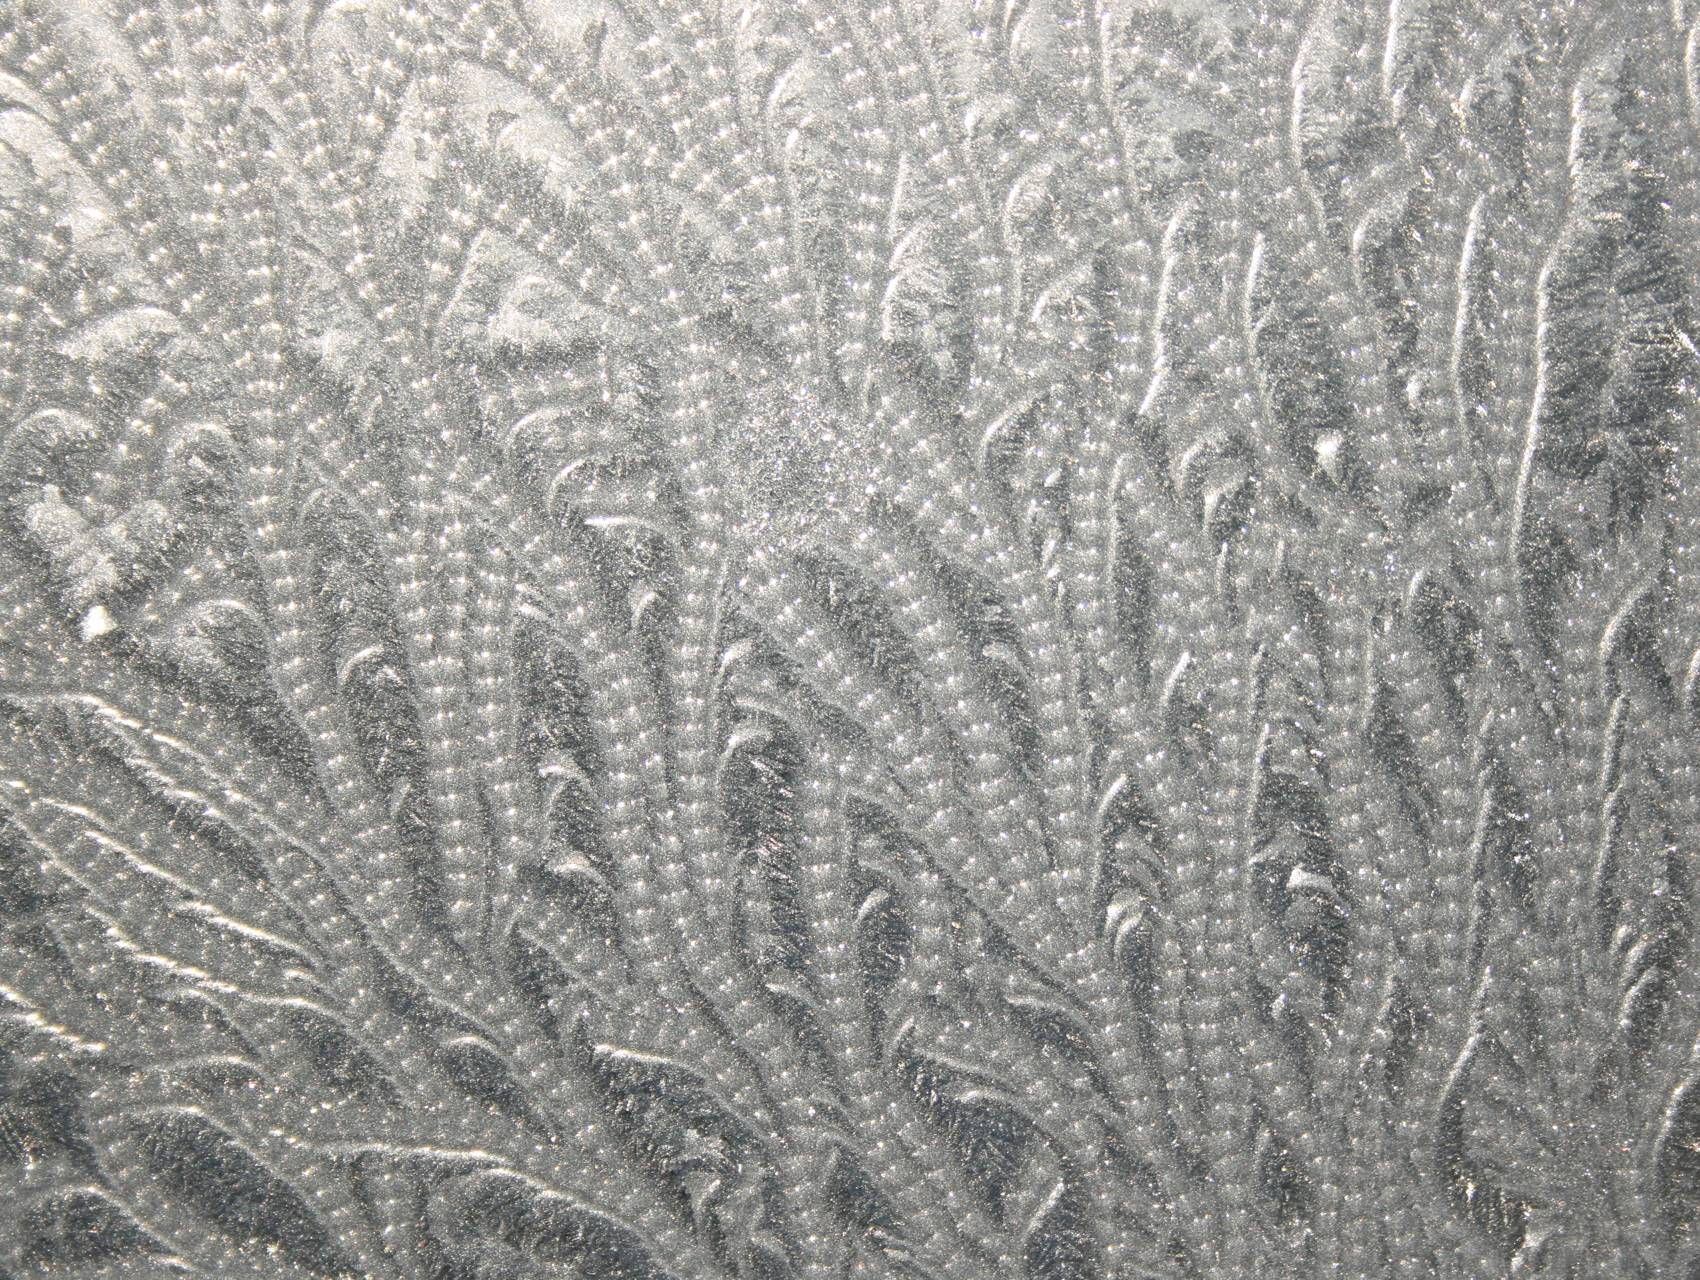 Patterns Of Frost